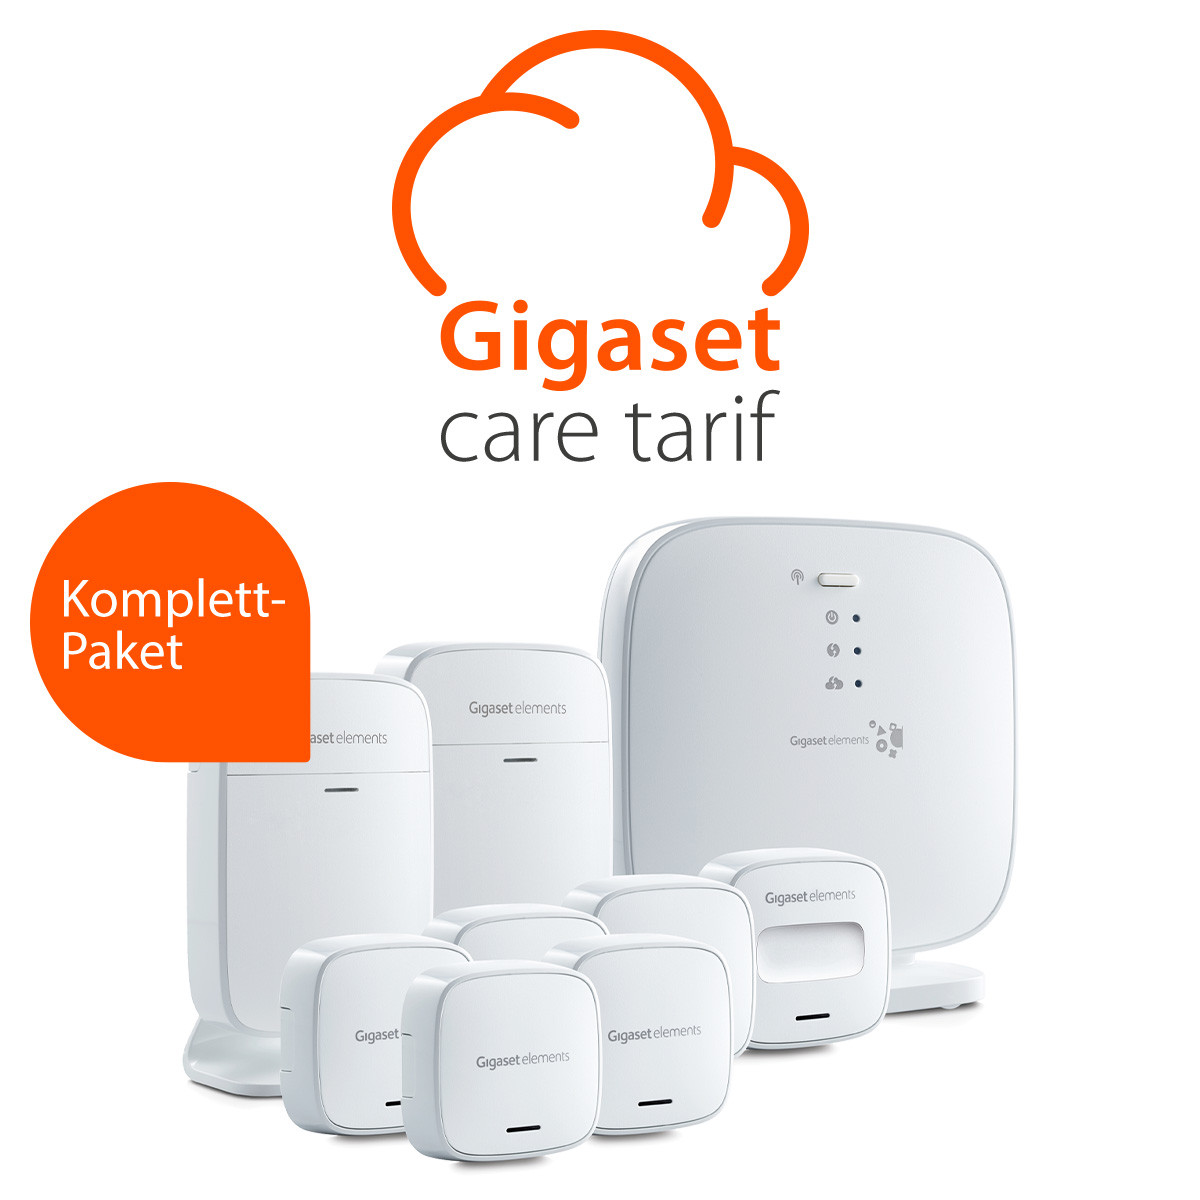 Gigaset smart care